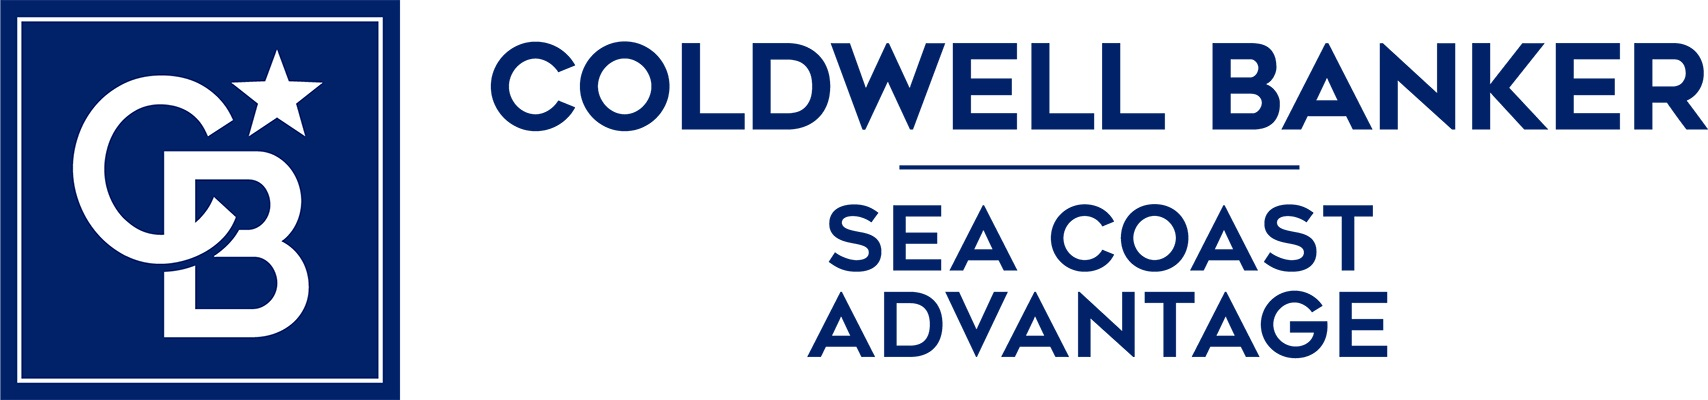 Dawn Glew - Coldwell Banker Sea Coast Advantage Realty